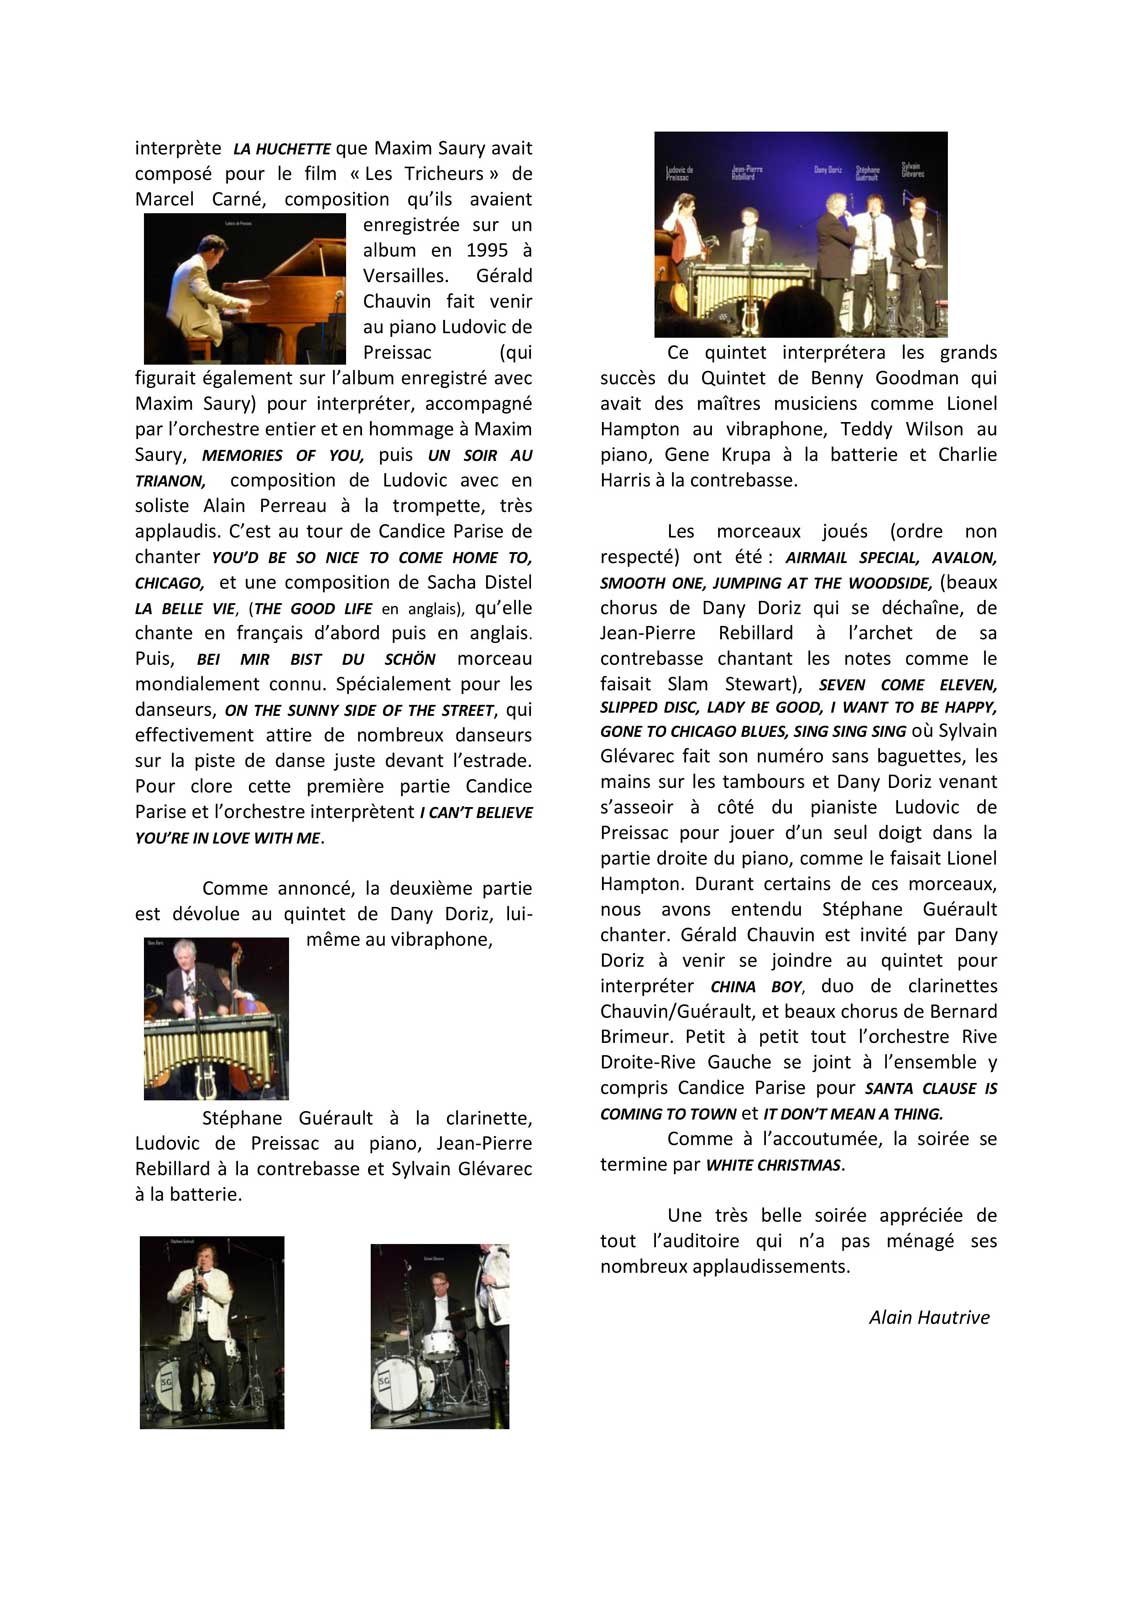 ARTICLE-HAUTRIVE-CAB-2012-02